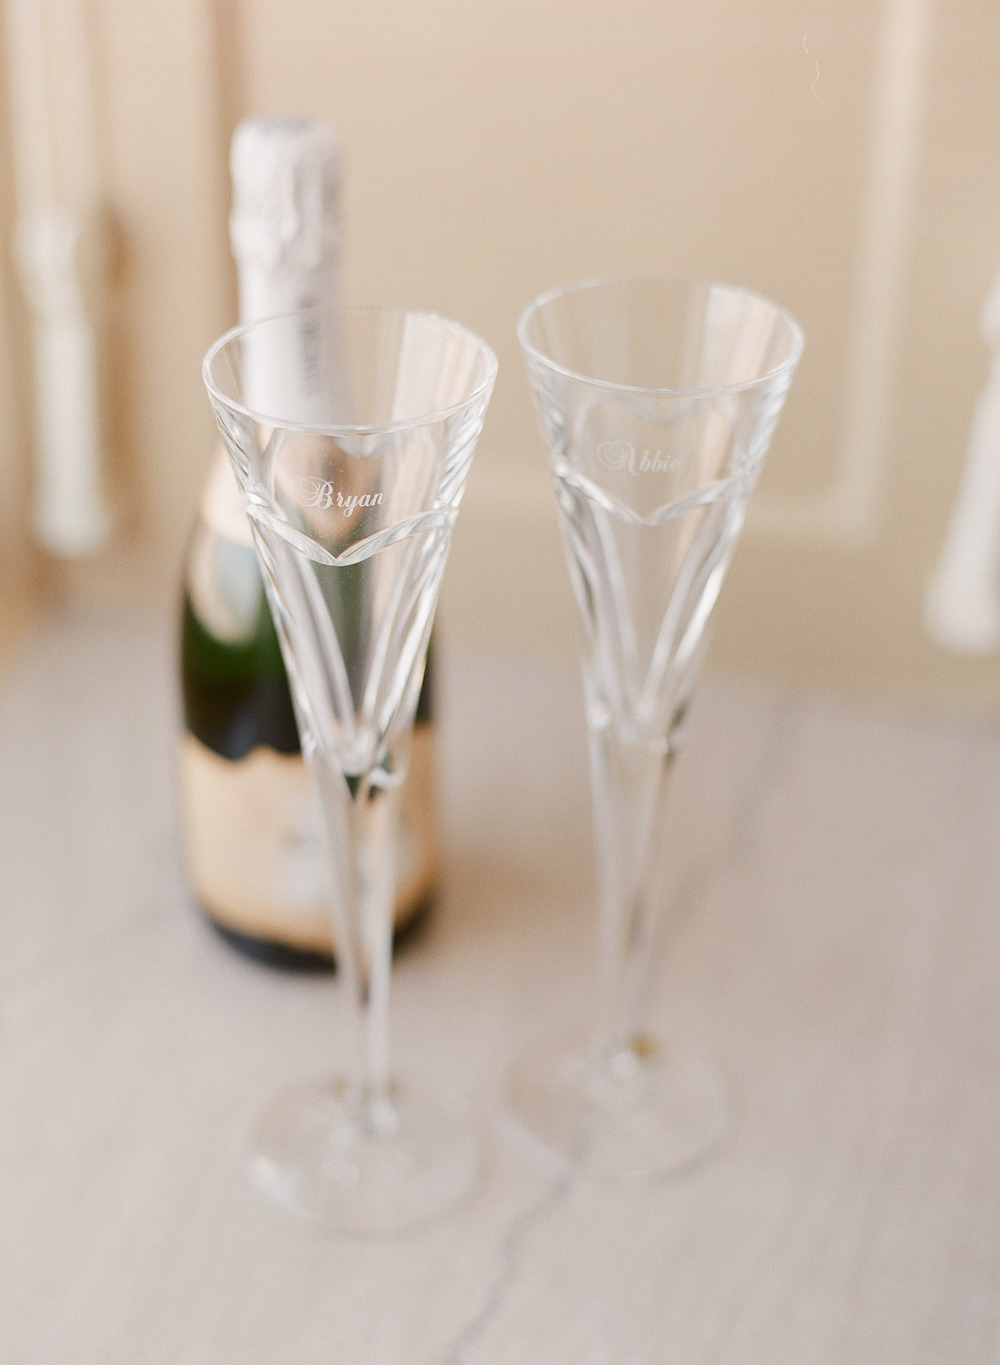 top destination wedding photographer lexia frank photographs the wedding of Green Bay Packer Bryan Bulaga and the custom crystal champagne glasses they used for their first toast, photographed on film, film photographer for weddings